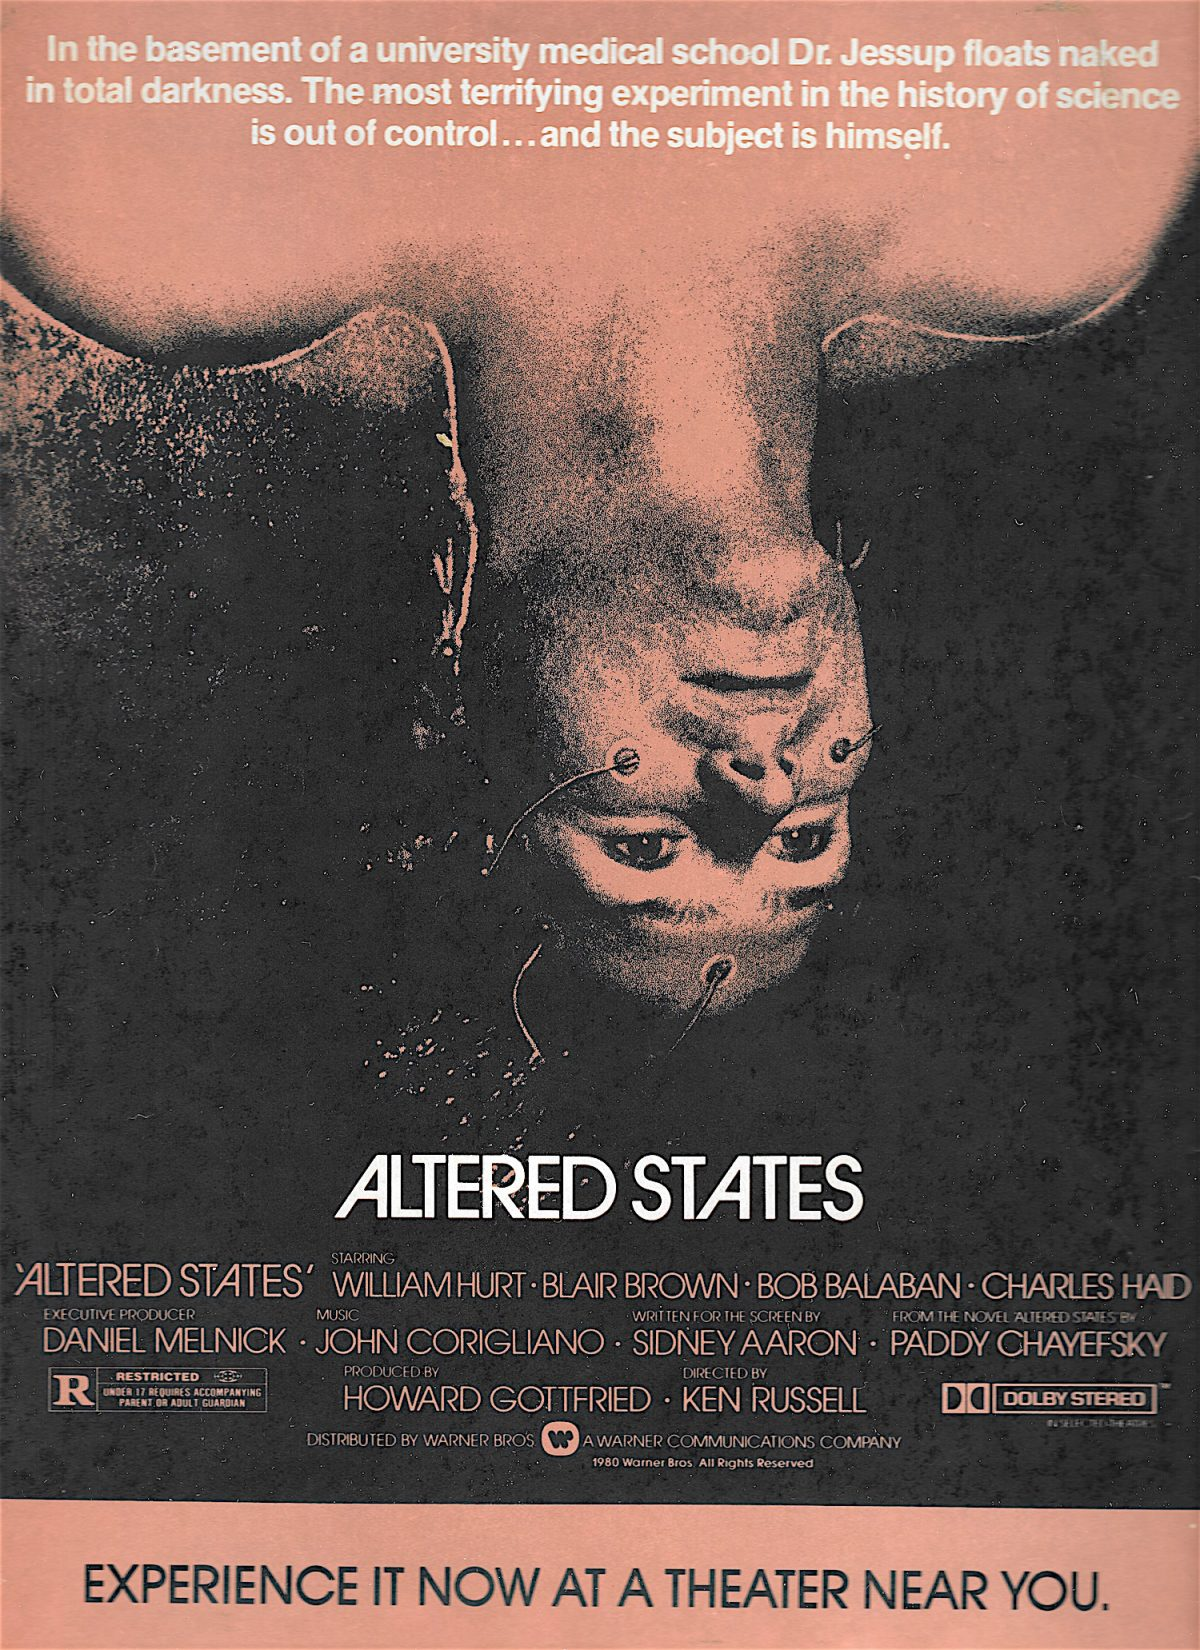 Ken Russell, Altered States, William Hurt